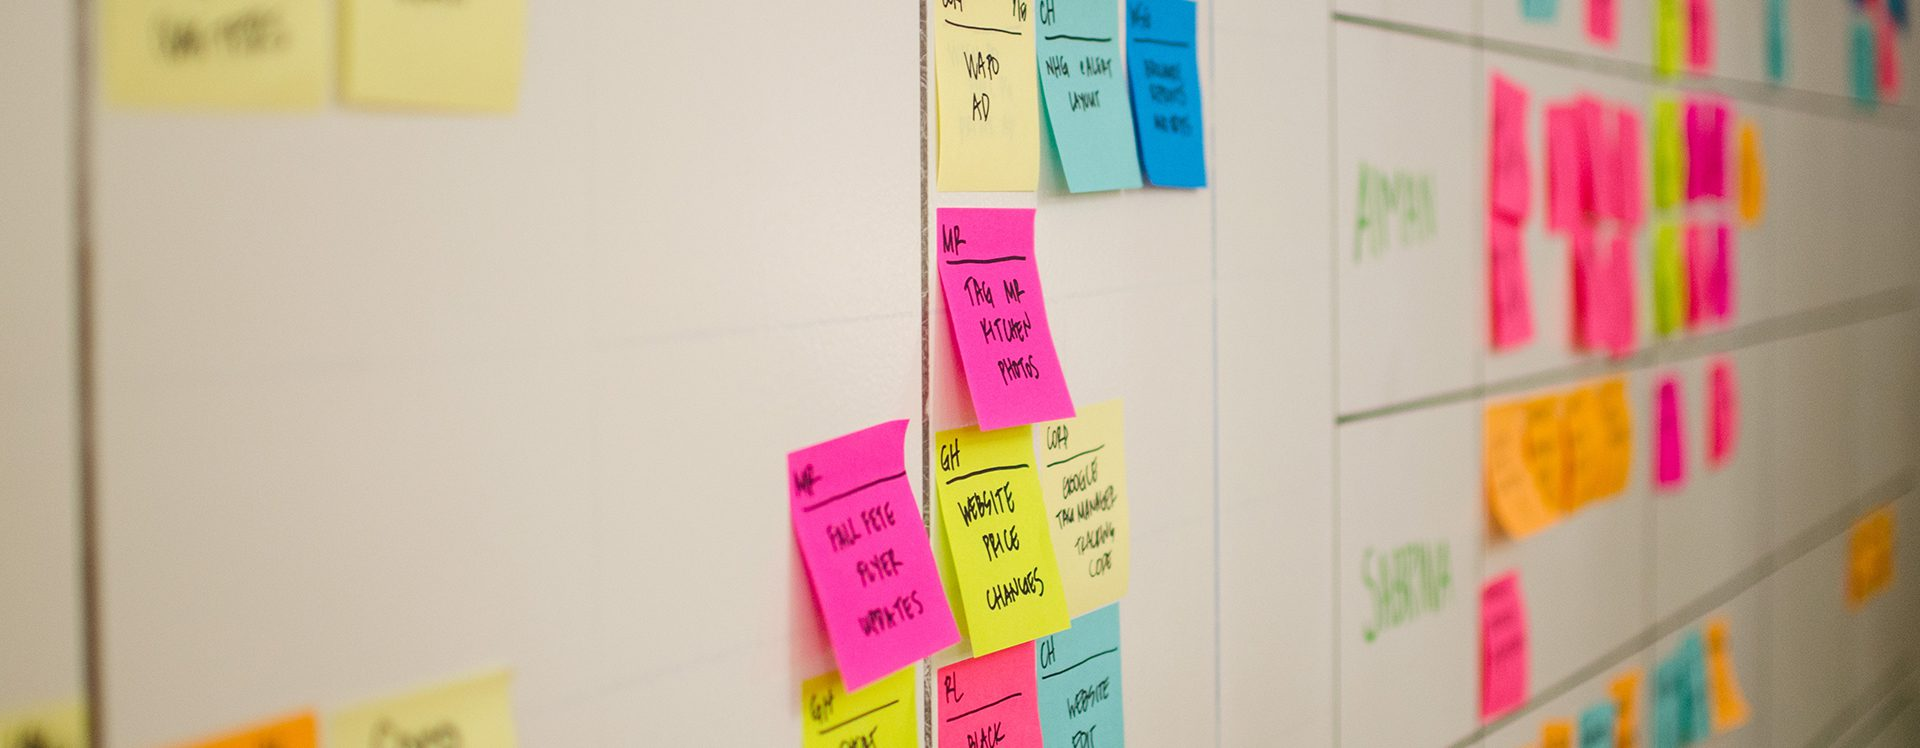 Post it notes on white board for Lighting Chat